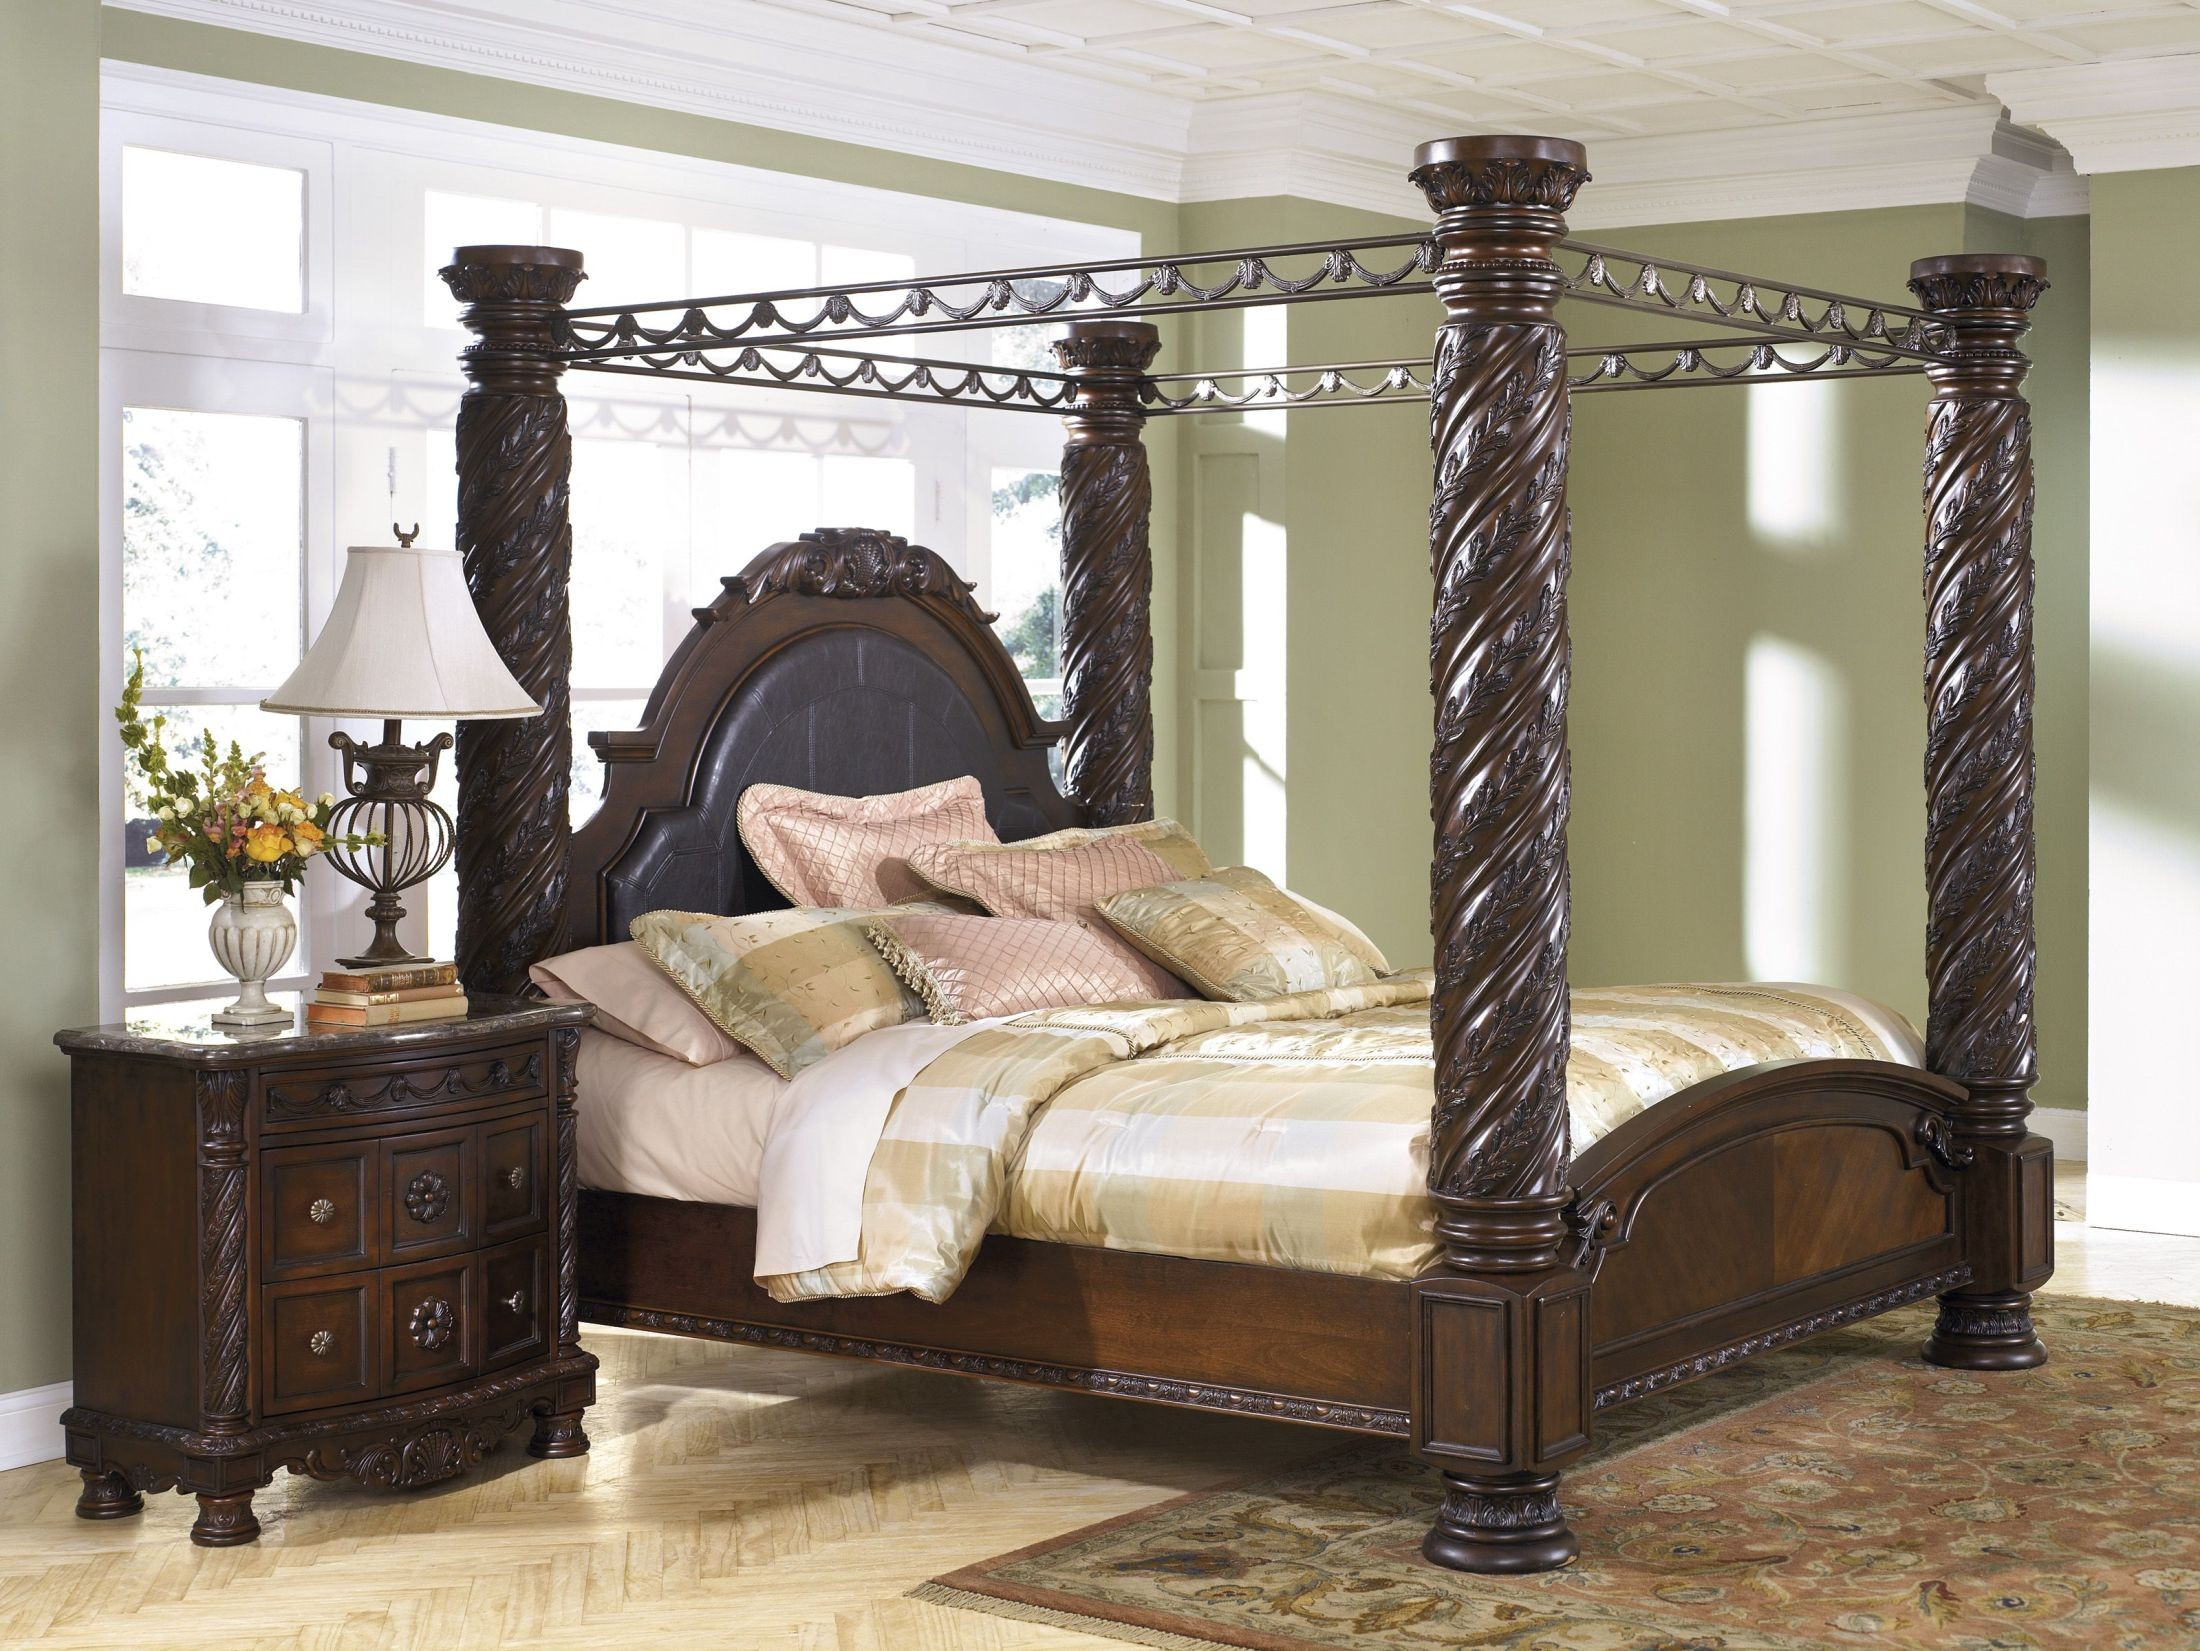 North Shore Cal King Poster Bed With Canopy From Ashley Coleman Furniture